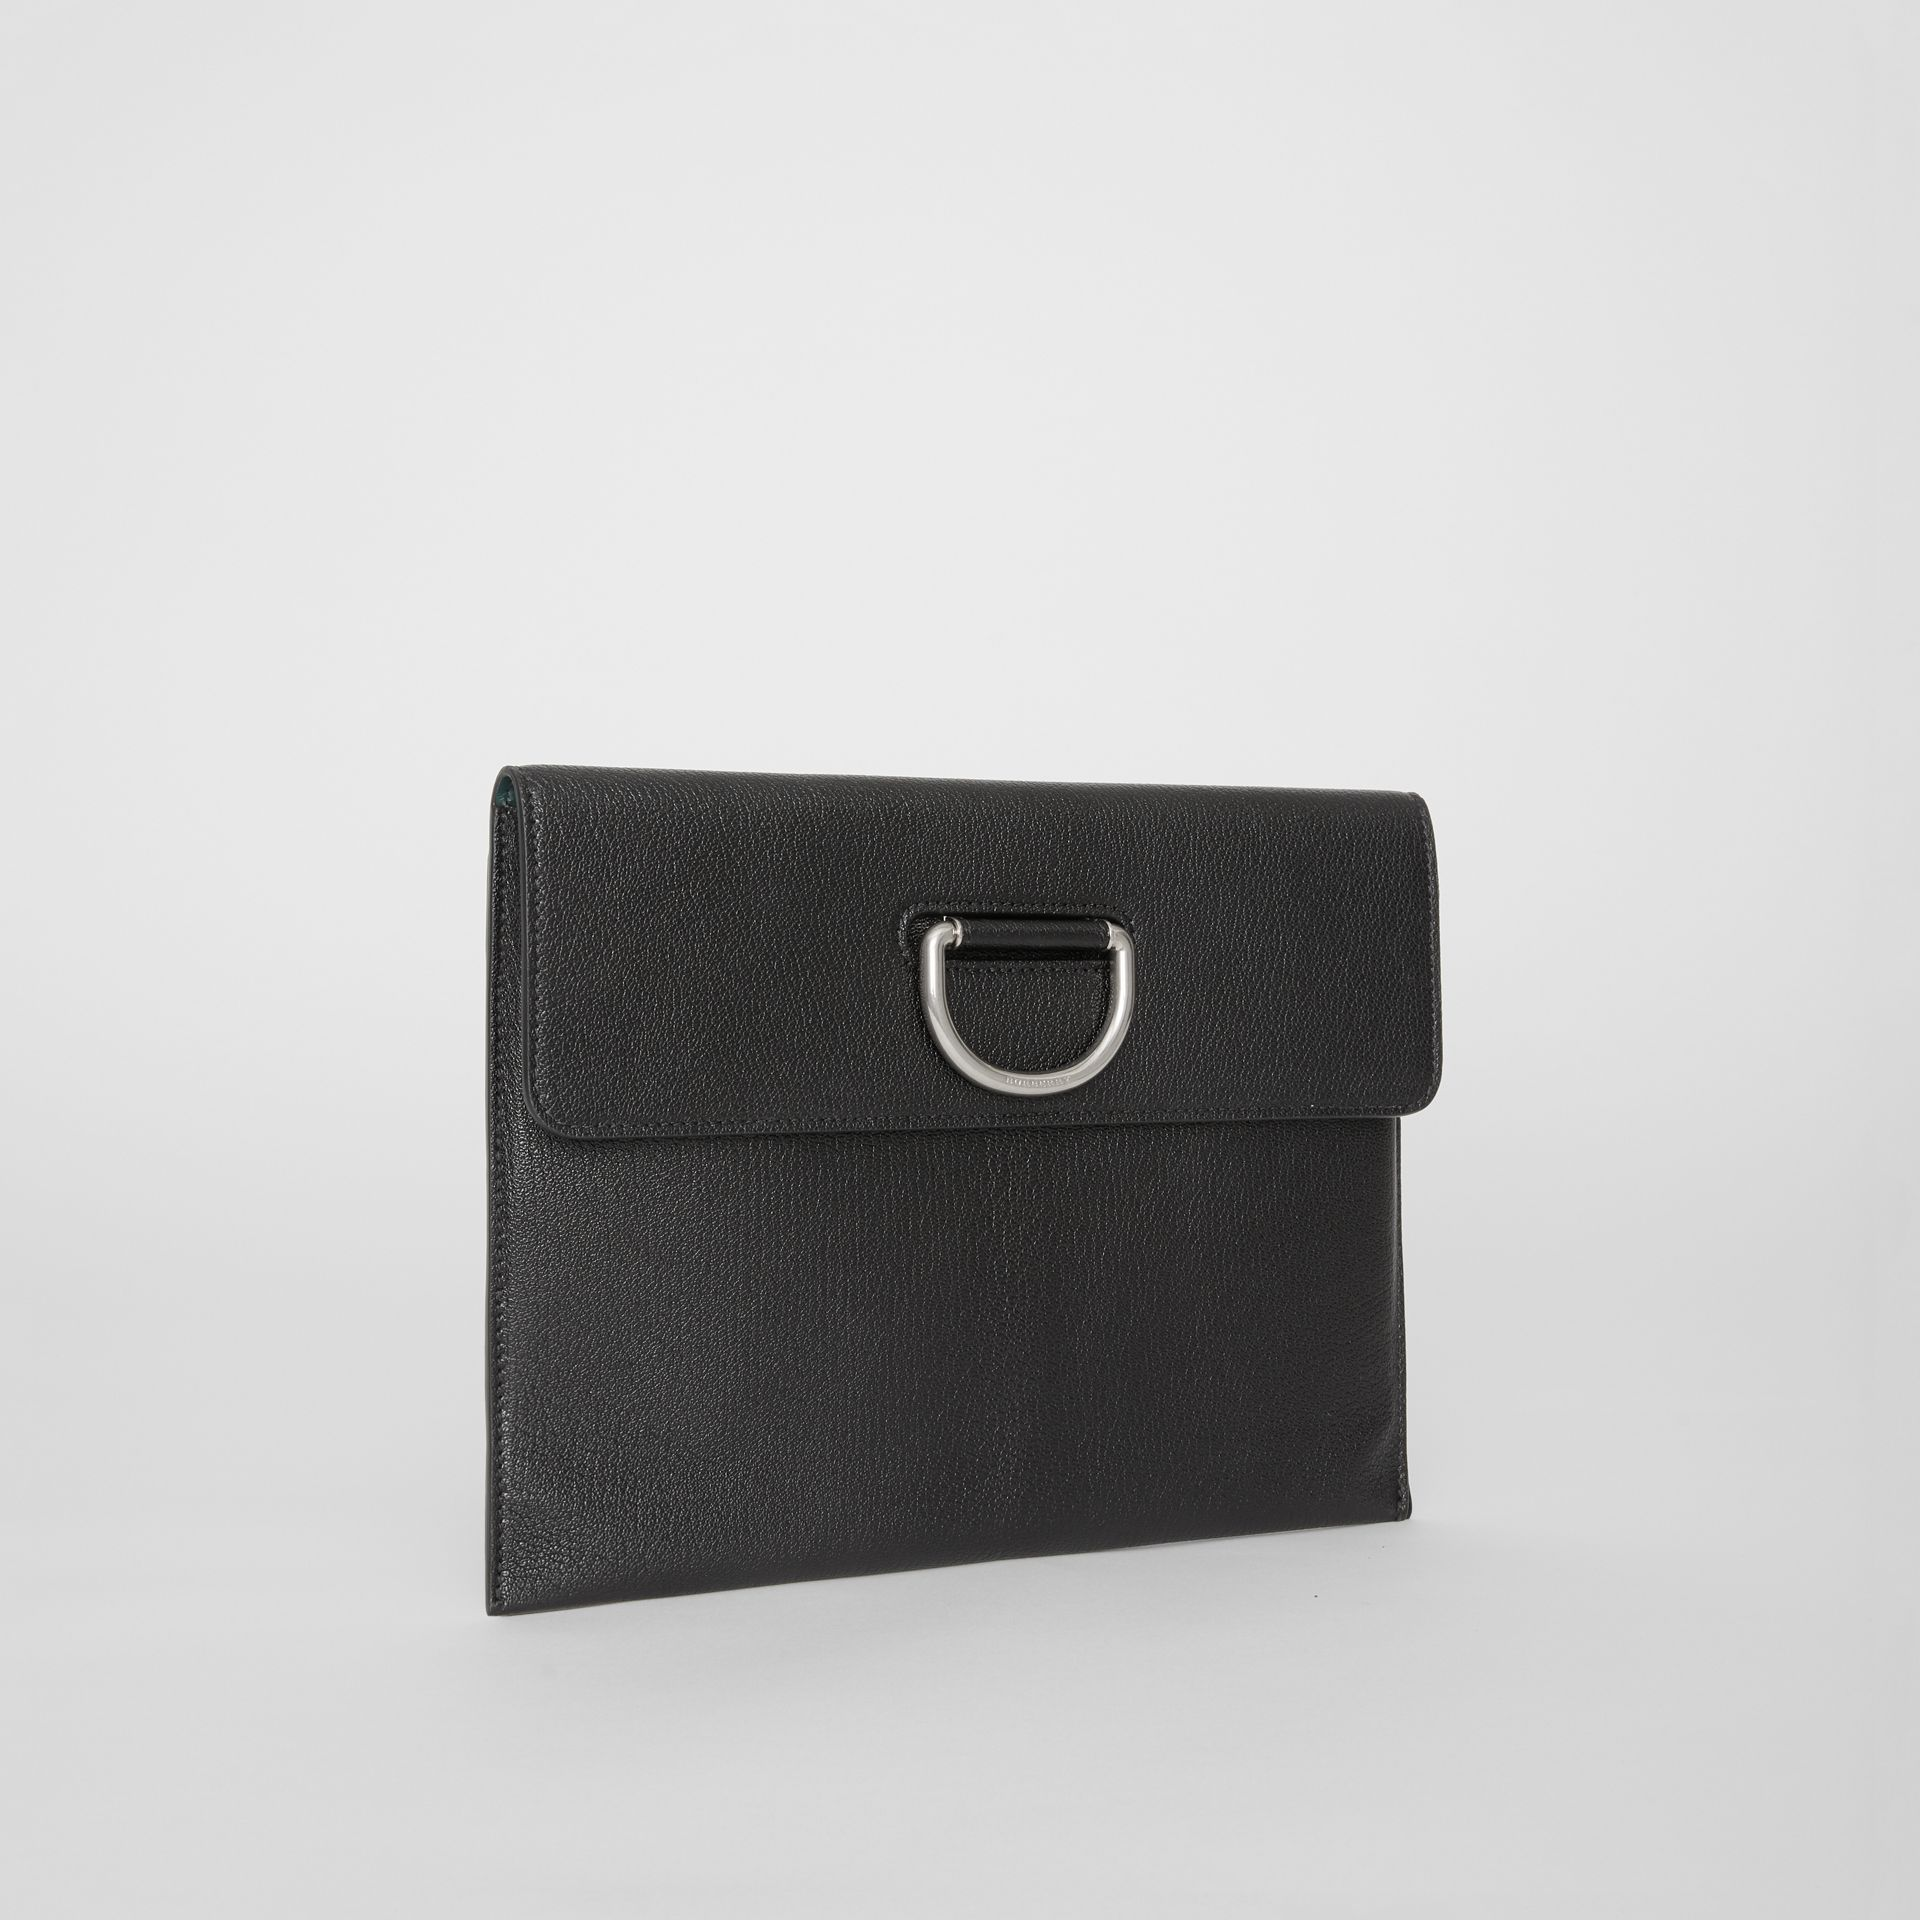 D-ring Leather Pouch in Black - Women | Burberry Australia - gallery image 4